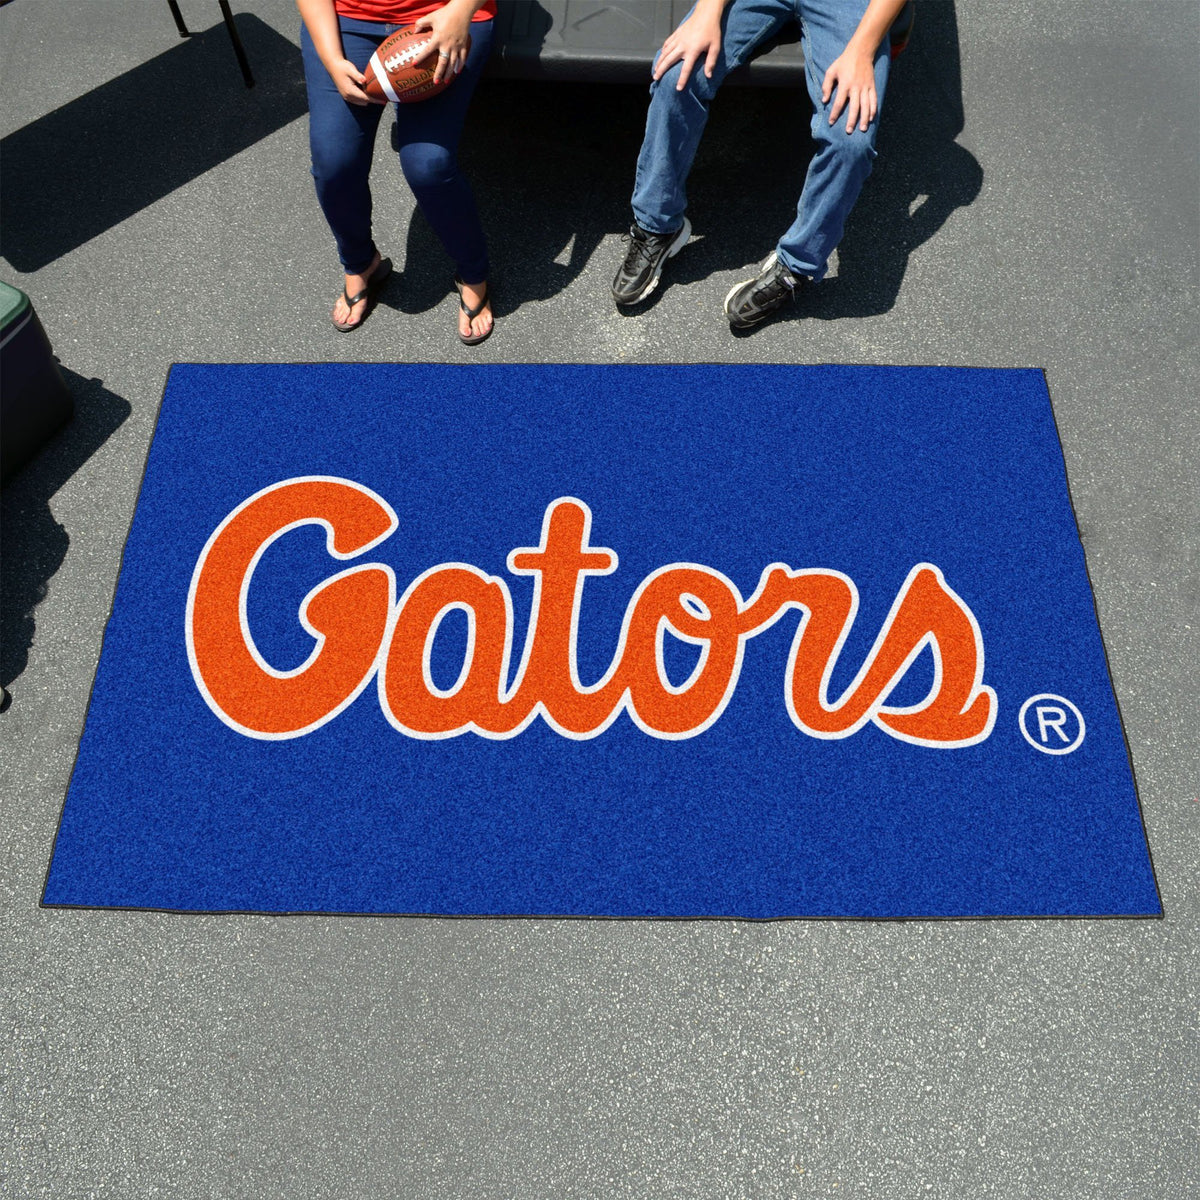 Collegiate - Ulti-Mat: A - L Collegiate Mats, Rectangular Mats, Ulti-Mat, Collegiate, Home Fan Mats Florida 2